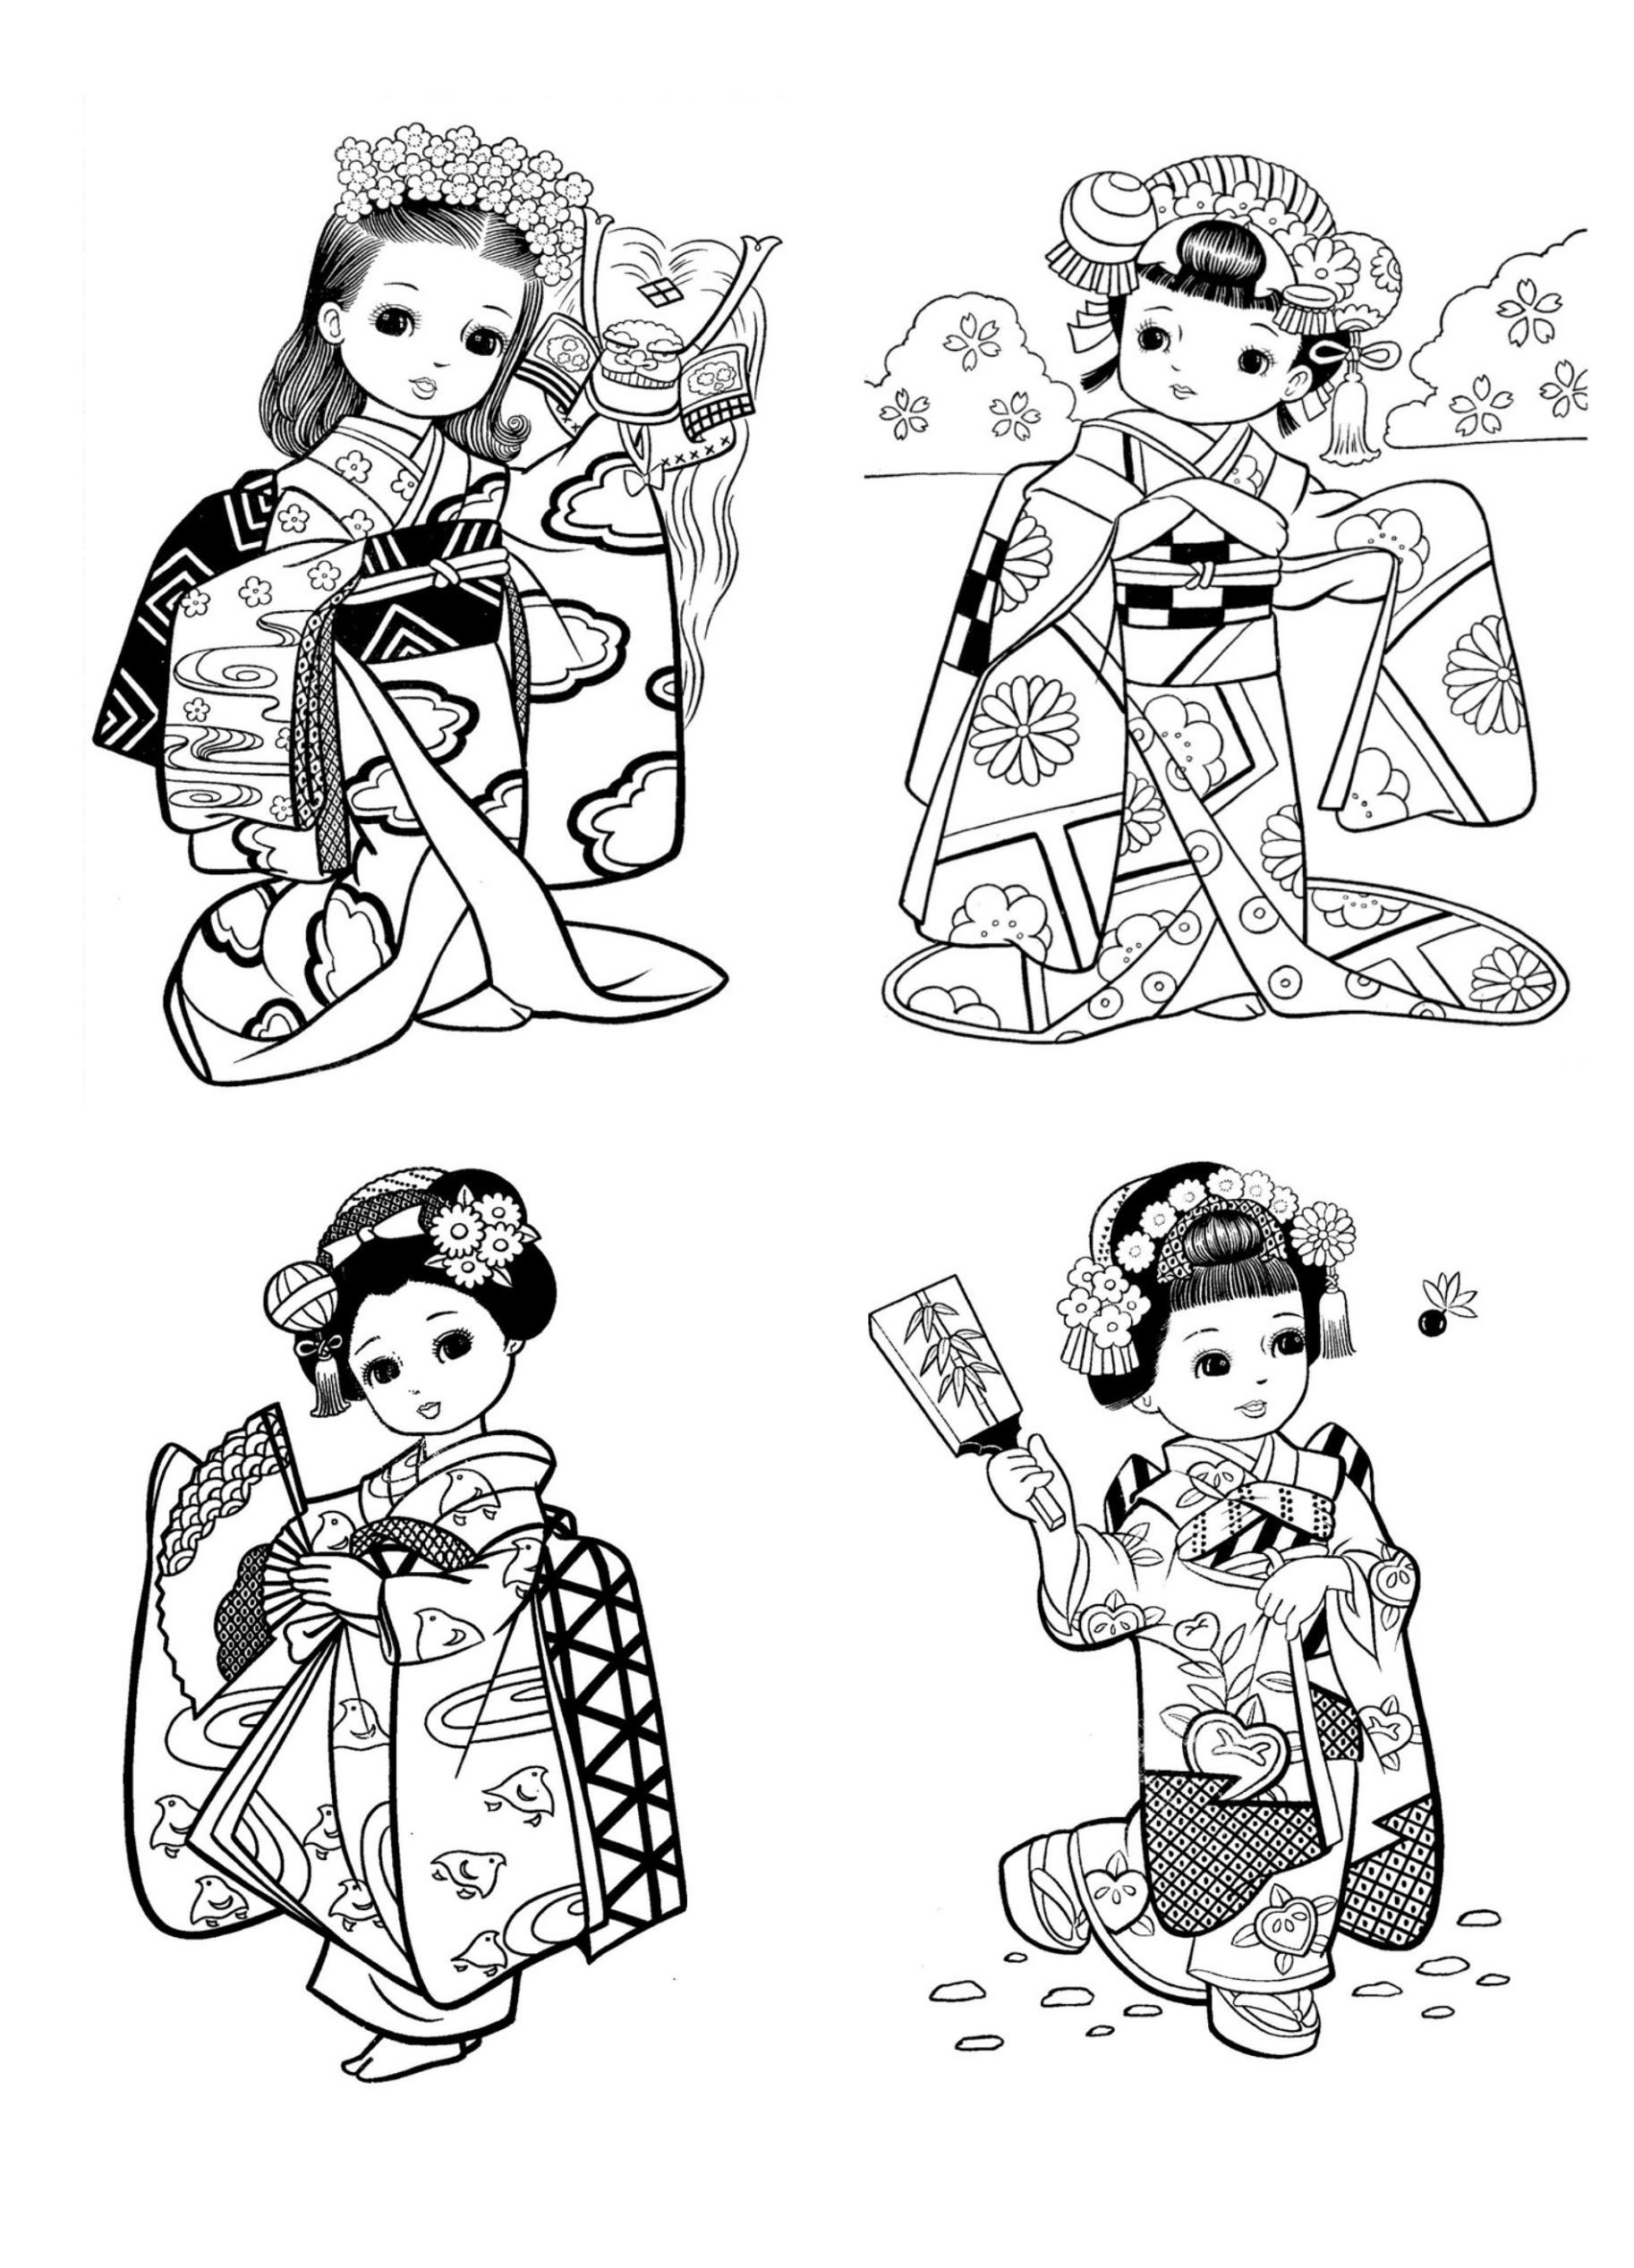 Free Coloring Page Coloring Little Japanese Child Style Drawing Coloring Pages Adult Coloring Pages Coloring Books